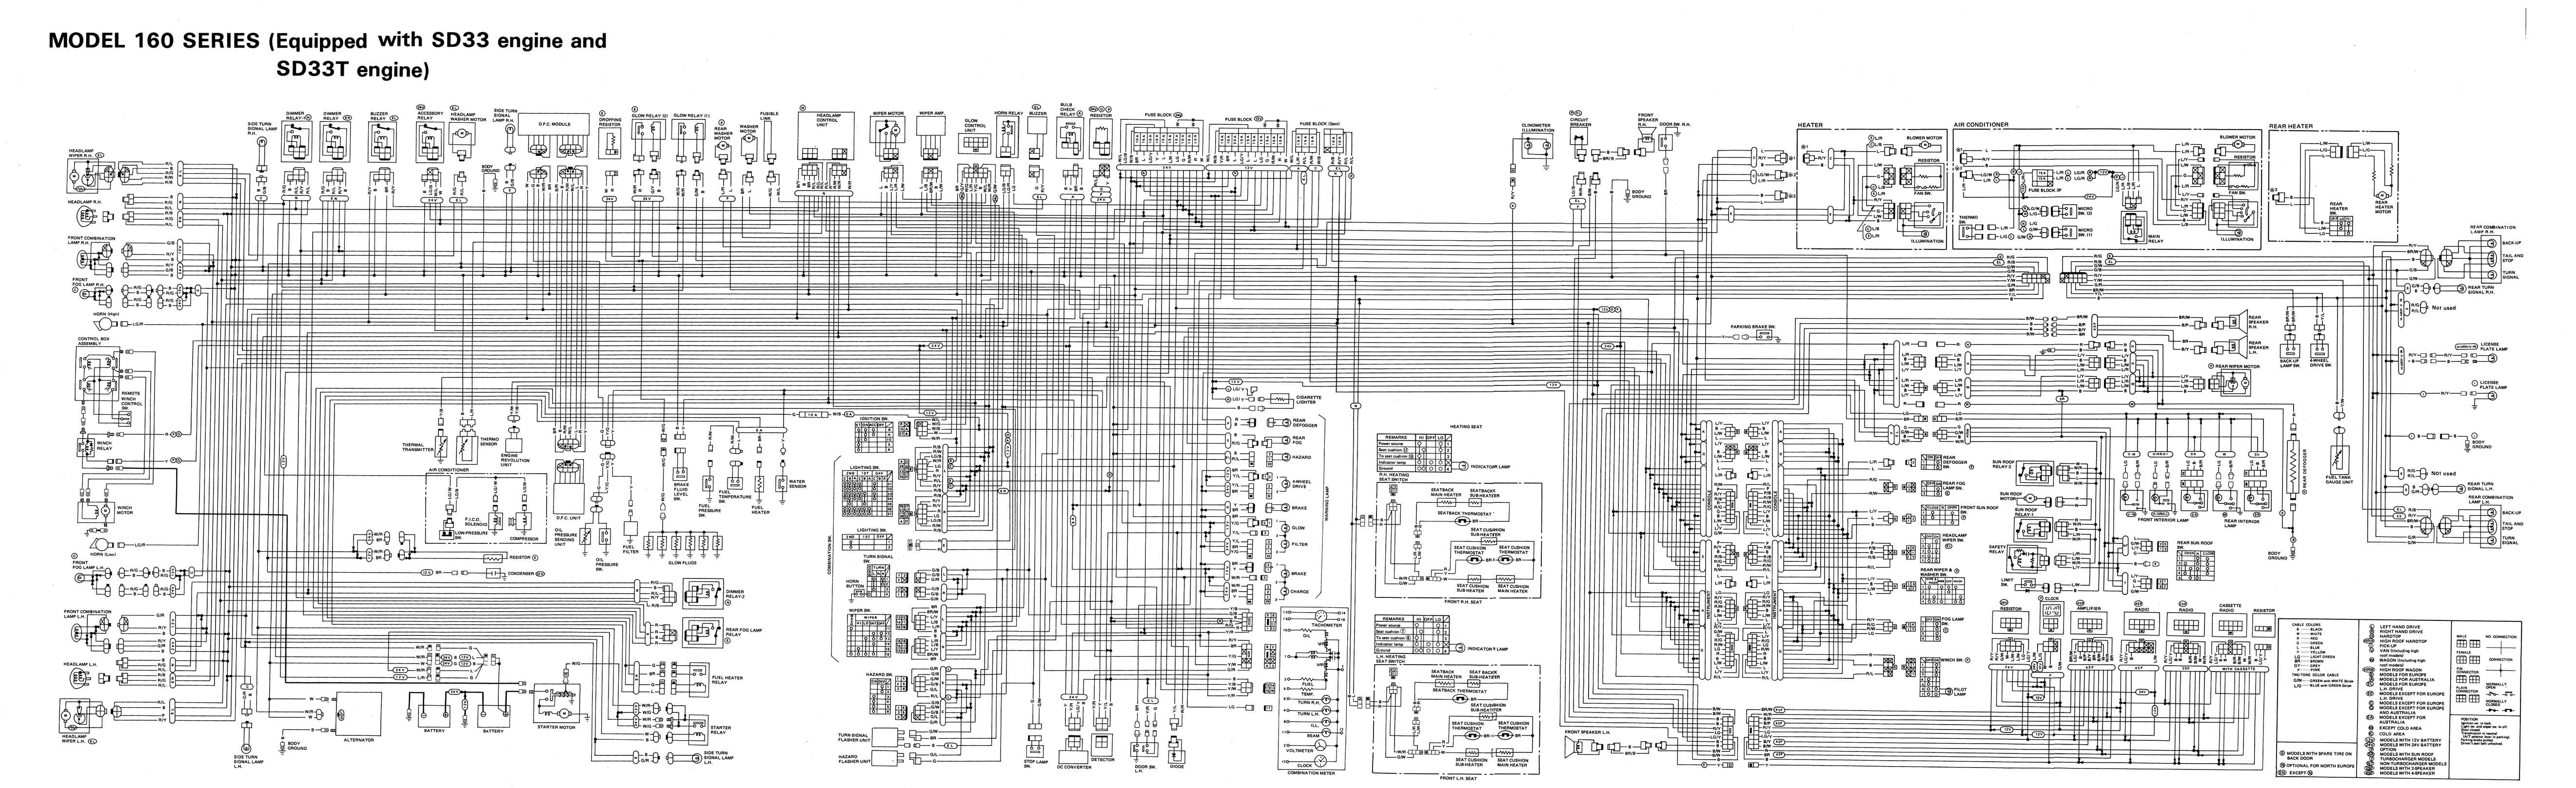 Wiring diagram zd30 click image for larger version name fuel zd30 ecu wiring diagram 1985 21 sd332bsd33t wiring diagram zd30 ecu wiring diagramhtml asfbconference2016 Gallery